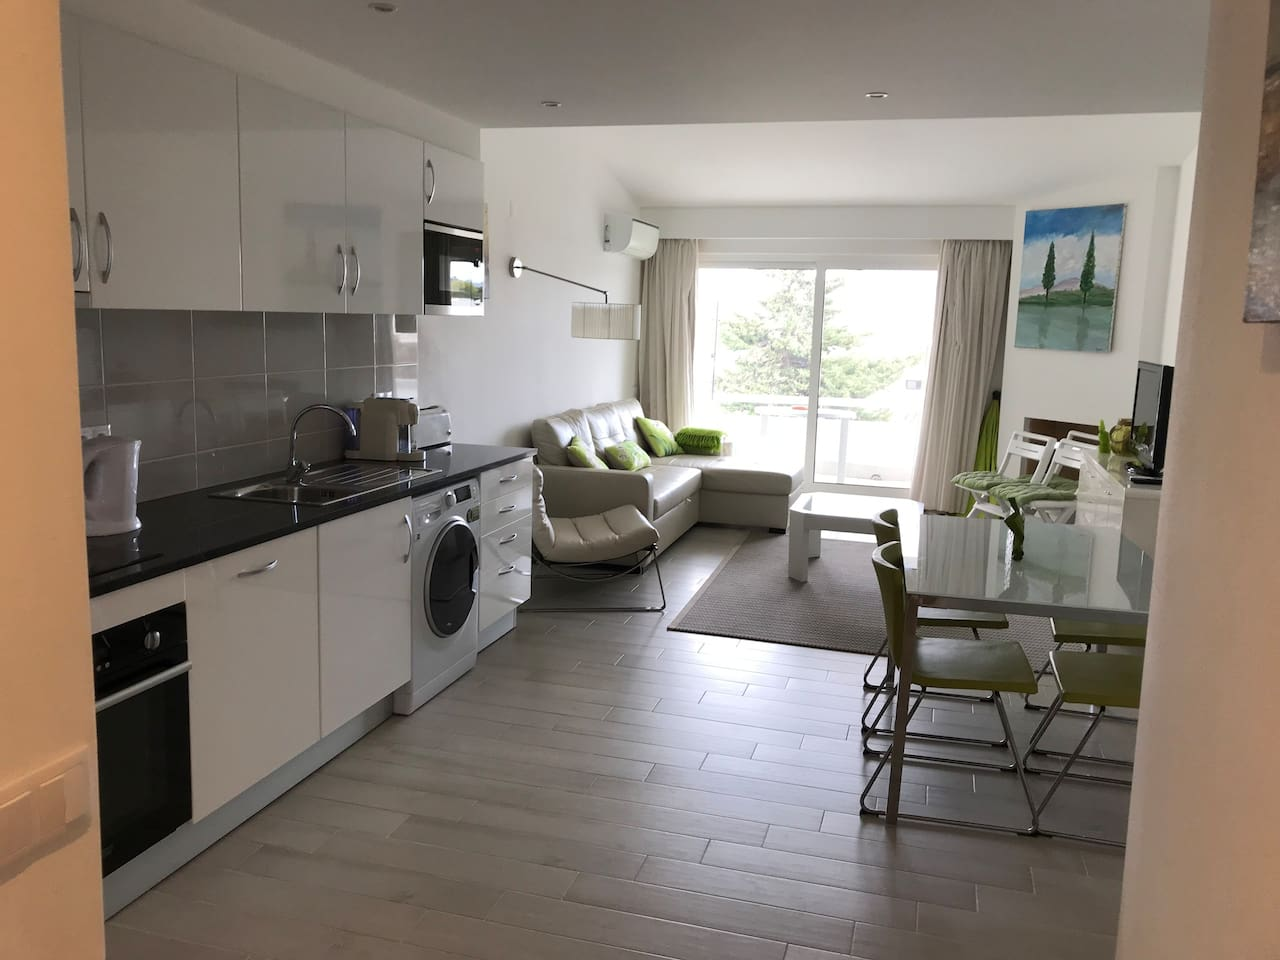 Living and kitchenette